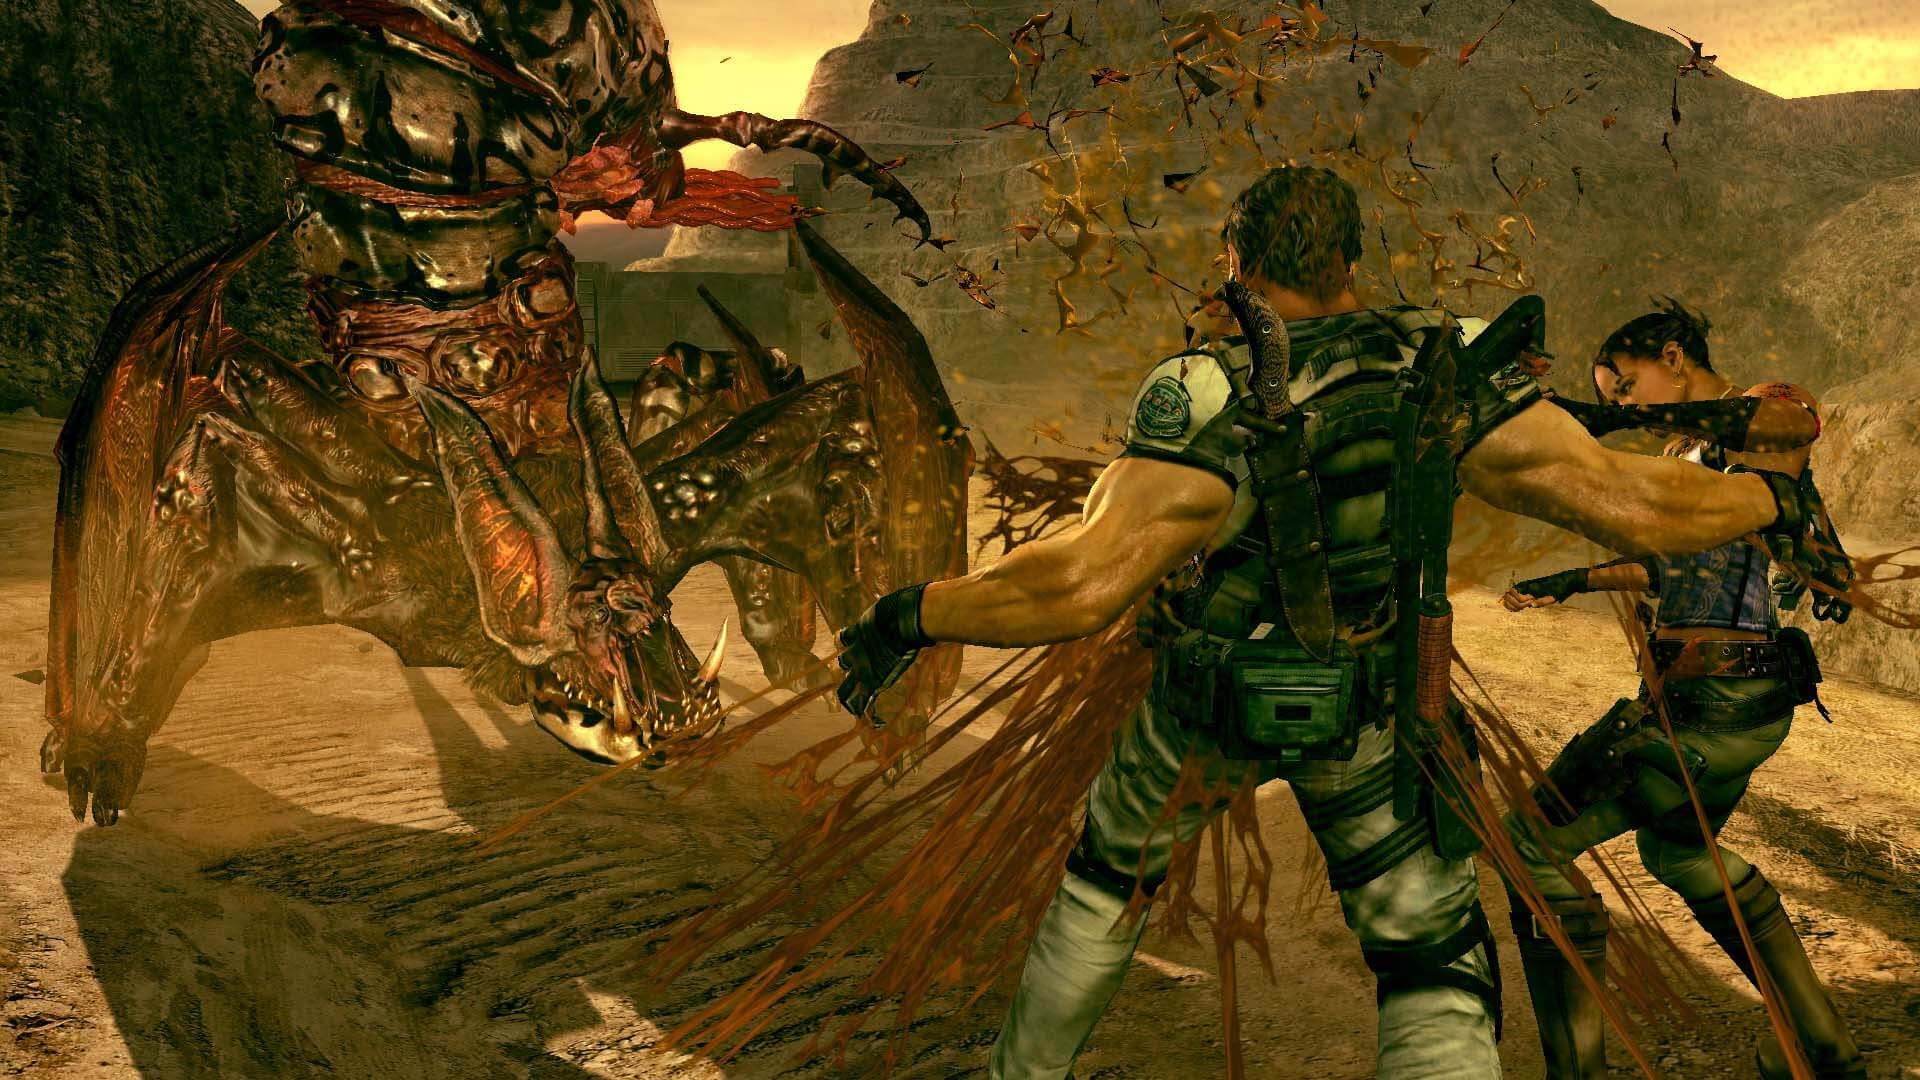 Resident Evil 5 Coming To Xbox One Digitally On June 28th